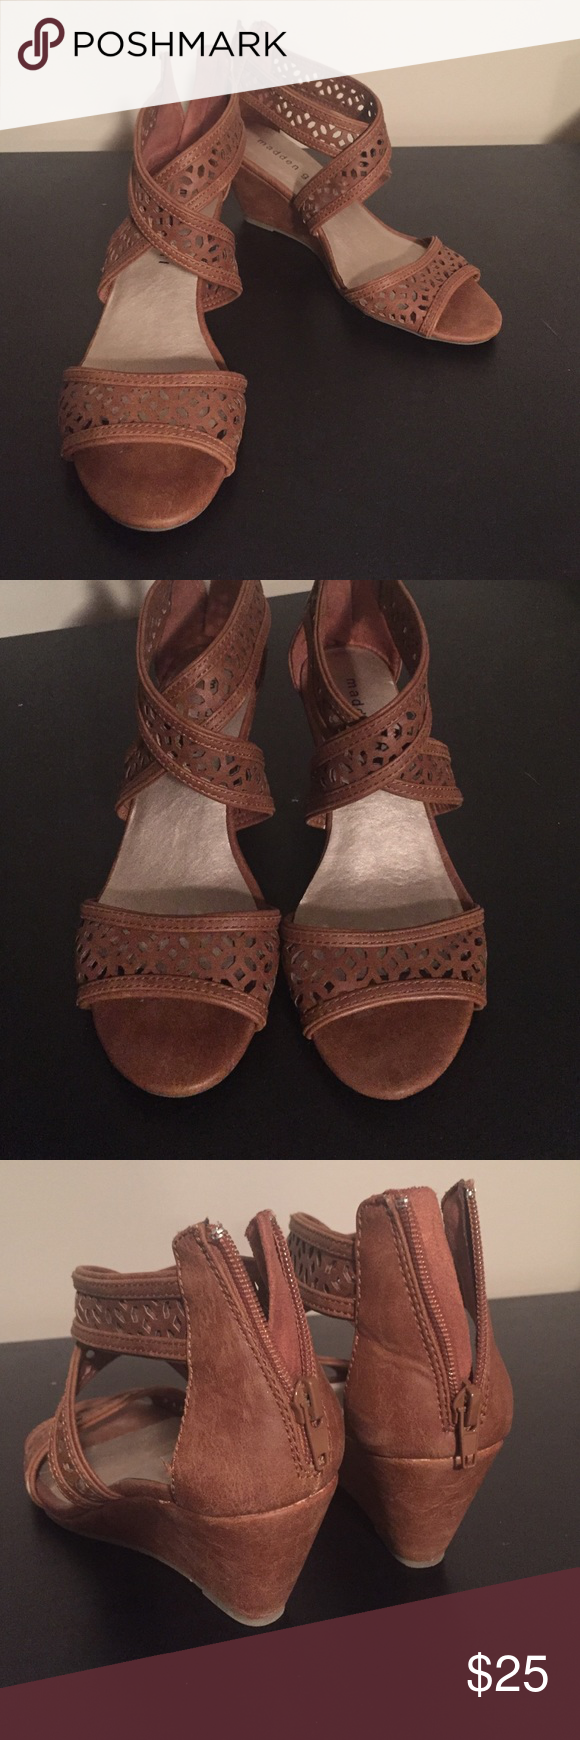 Madden girl wedges Tan madden girl wedges size 7. Worn few times in great condition! Madden Girl Shoes Wedges